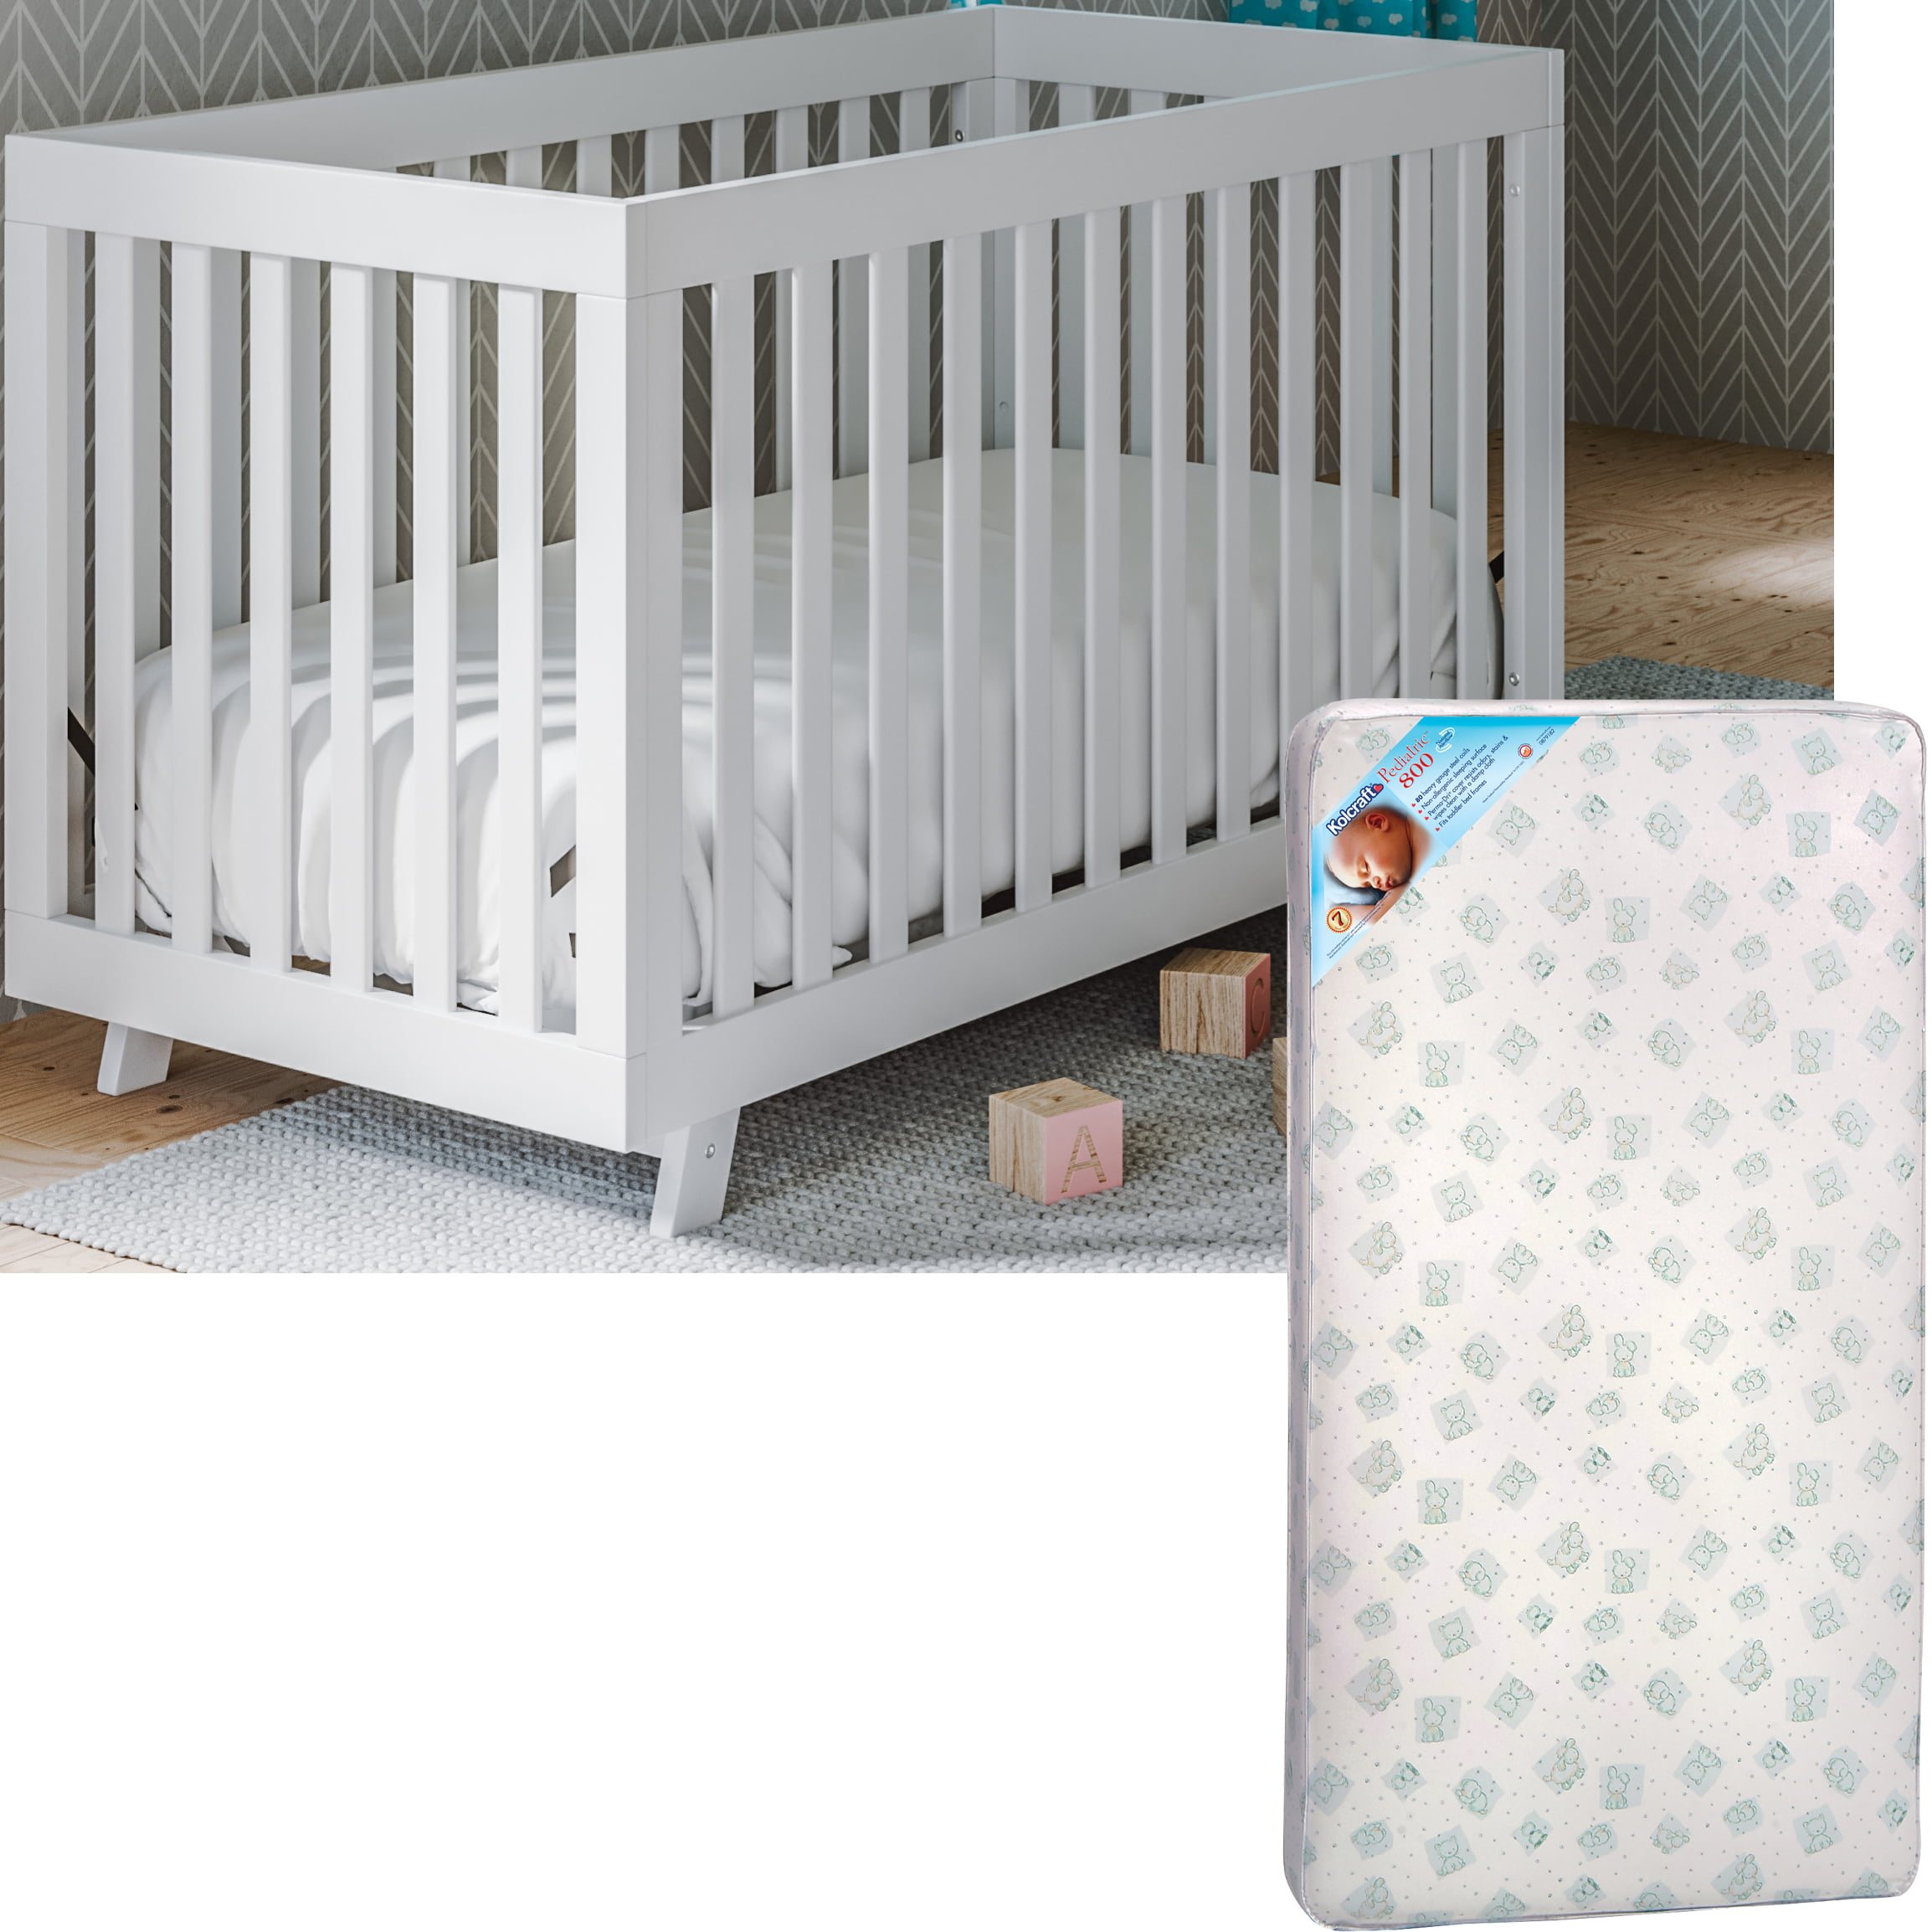 Baby cribs big w - Baby Cribs Big W 39